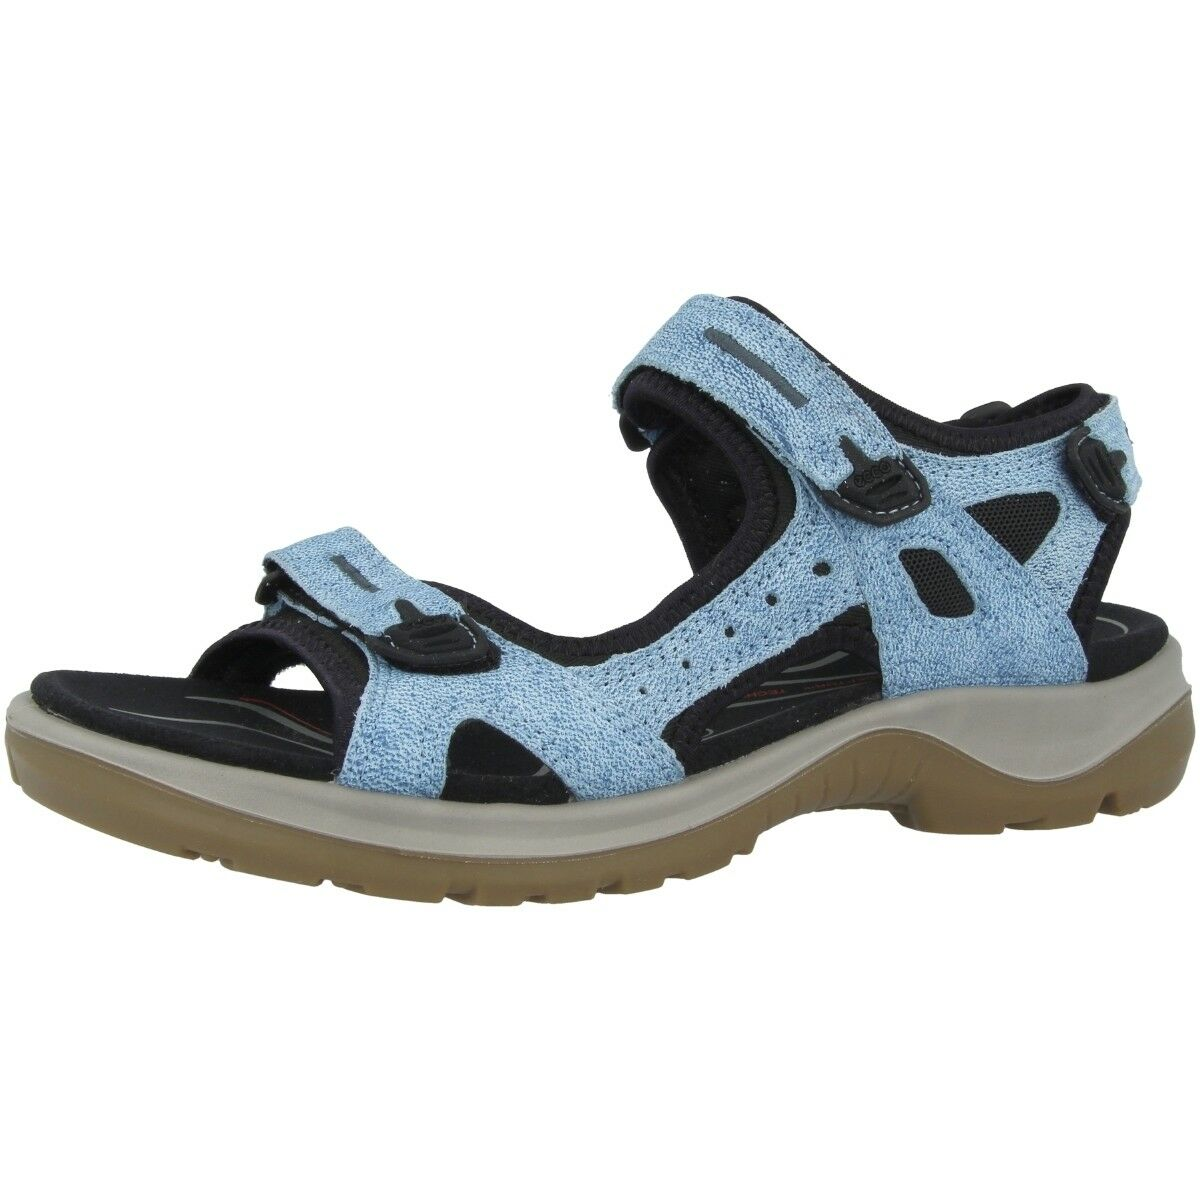 Ecco todoterreno Ladies outdoor sandalias señora Hiking zapatos Indigo 822083-01321